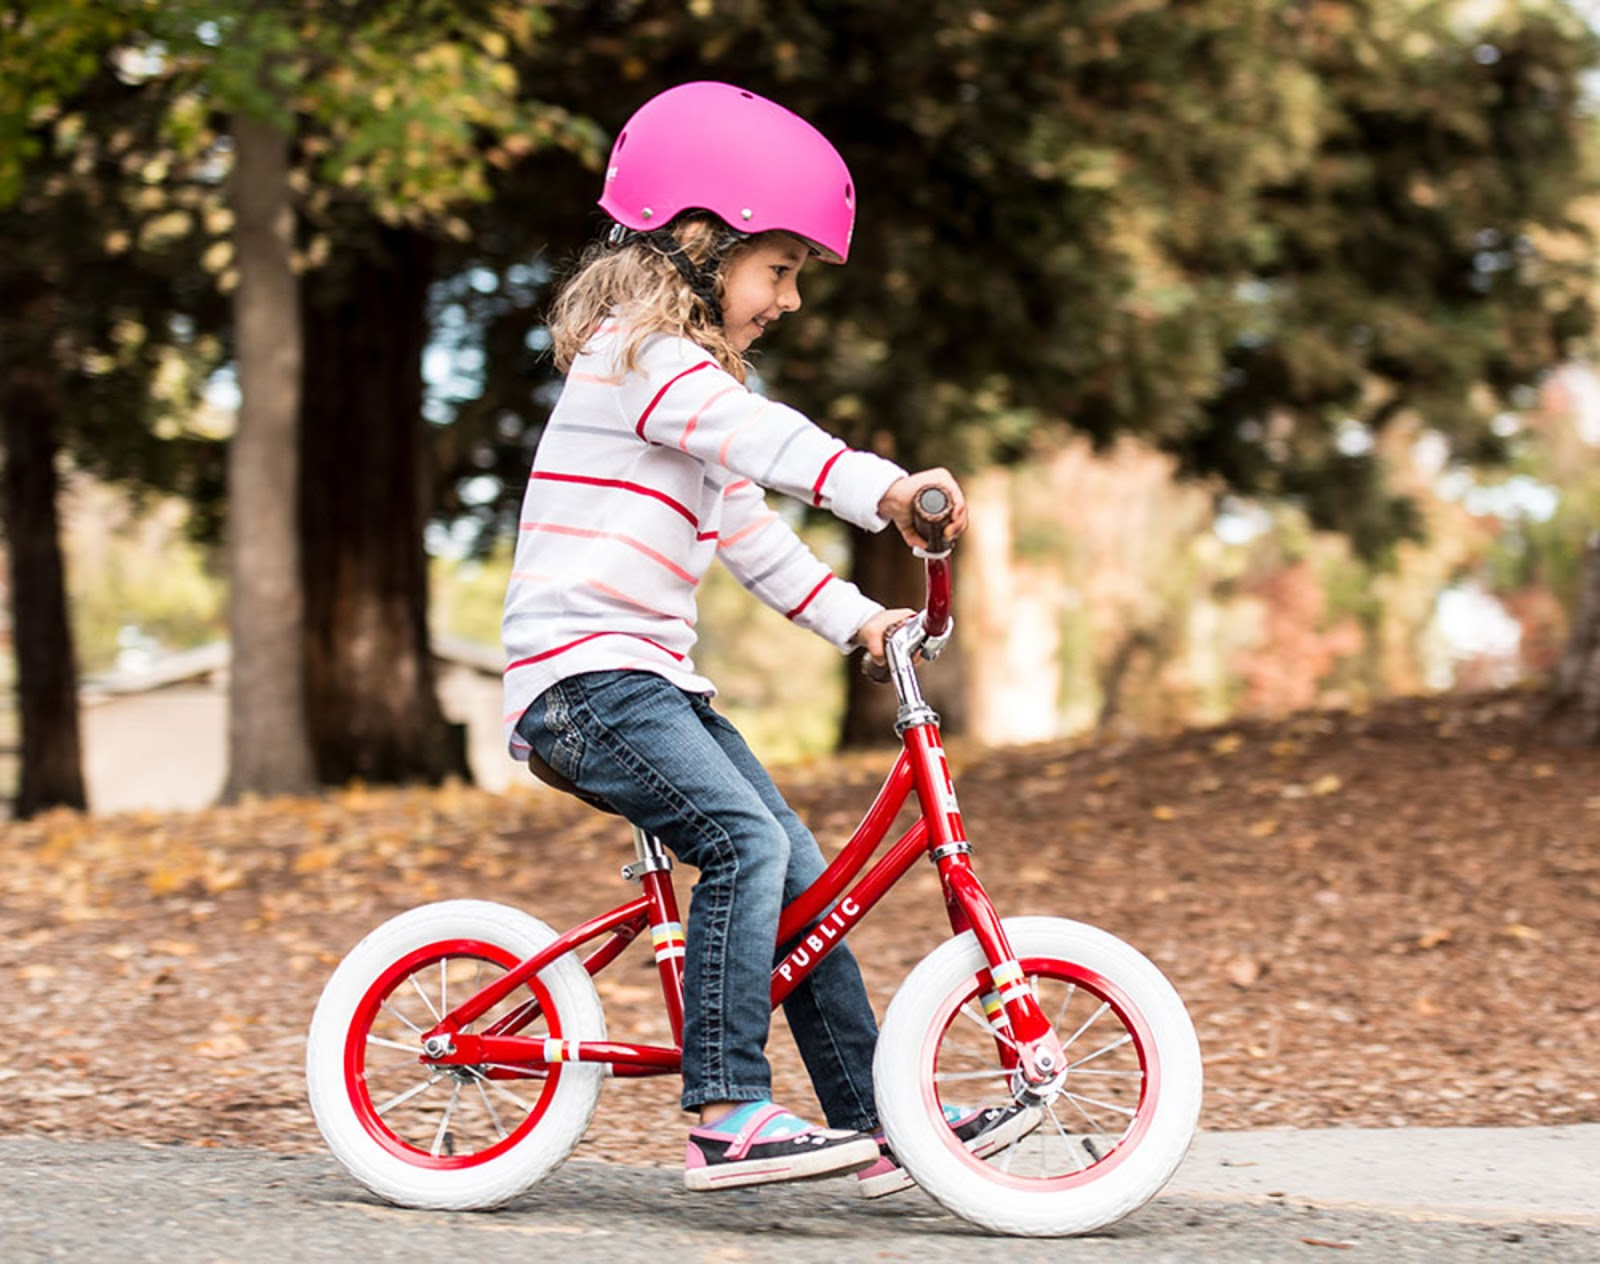 Best Balance Bikes For Kids Learning How To Ride A Bike - Reviews